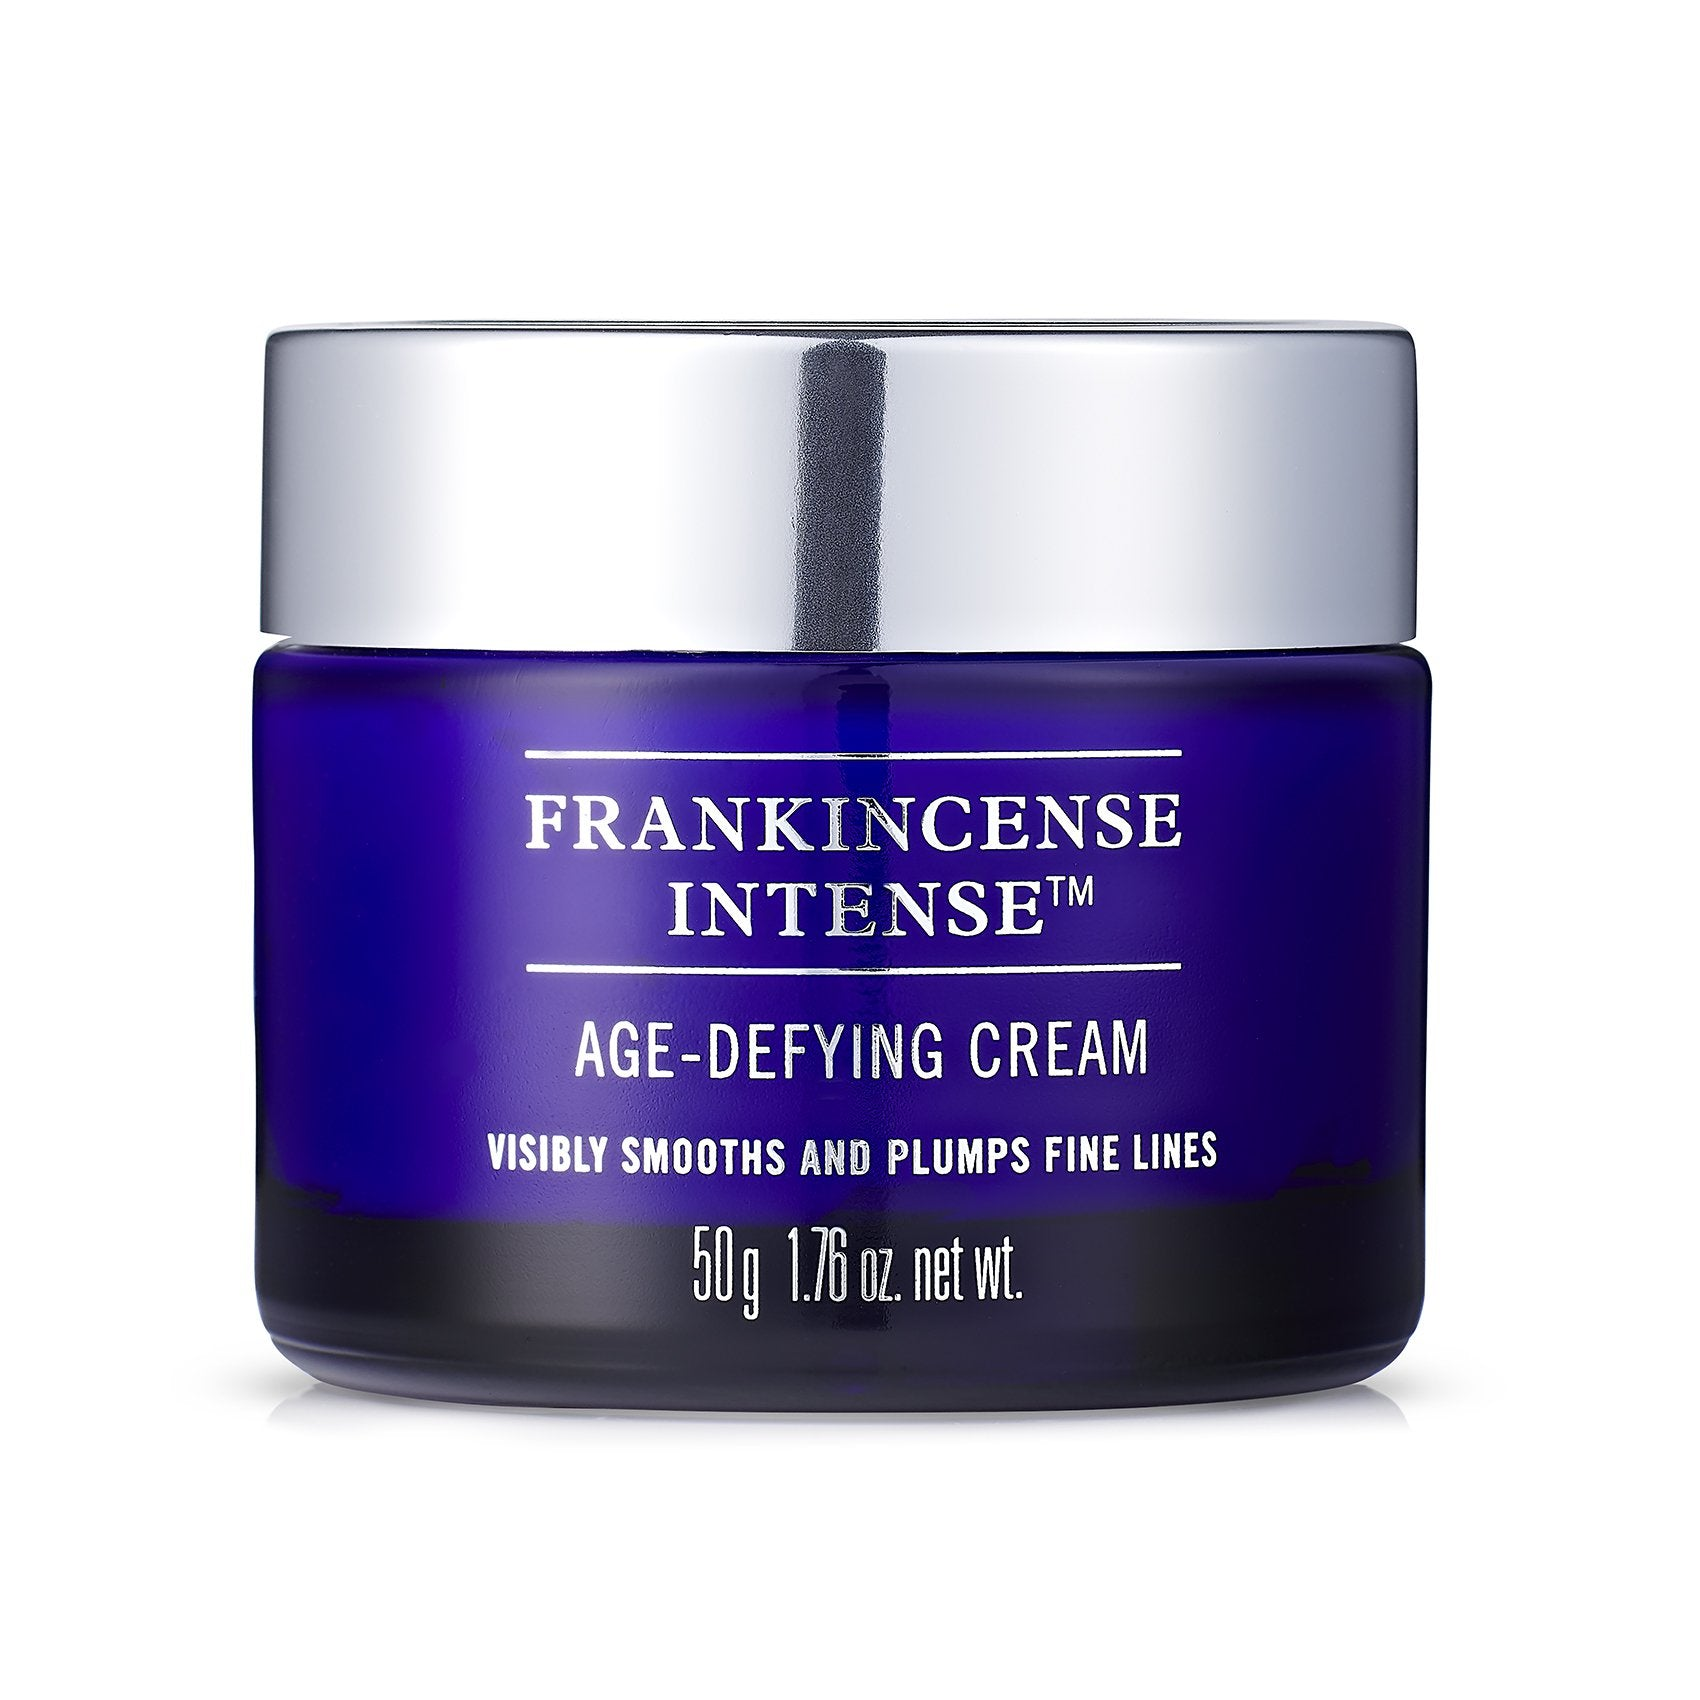 Frankincense Intense Age Defying Cream